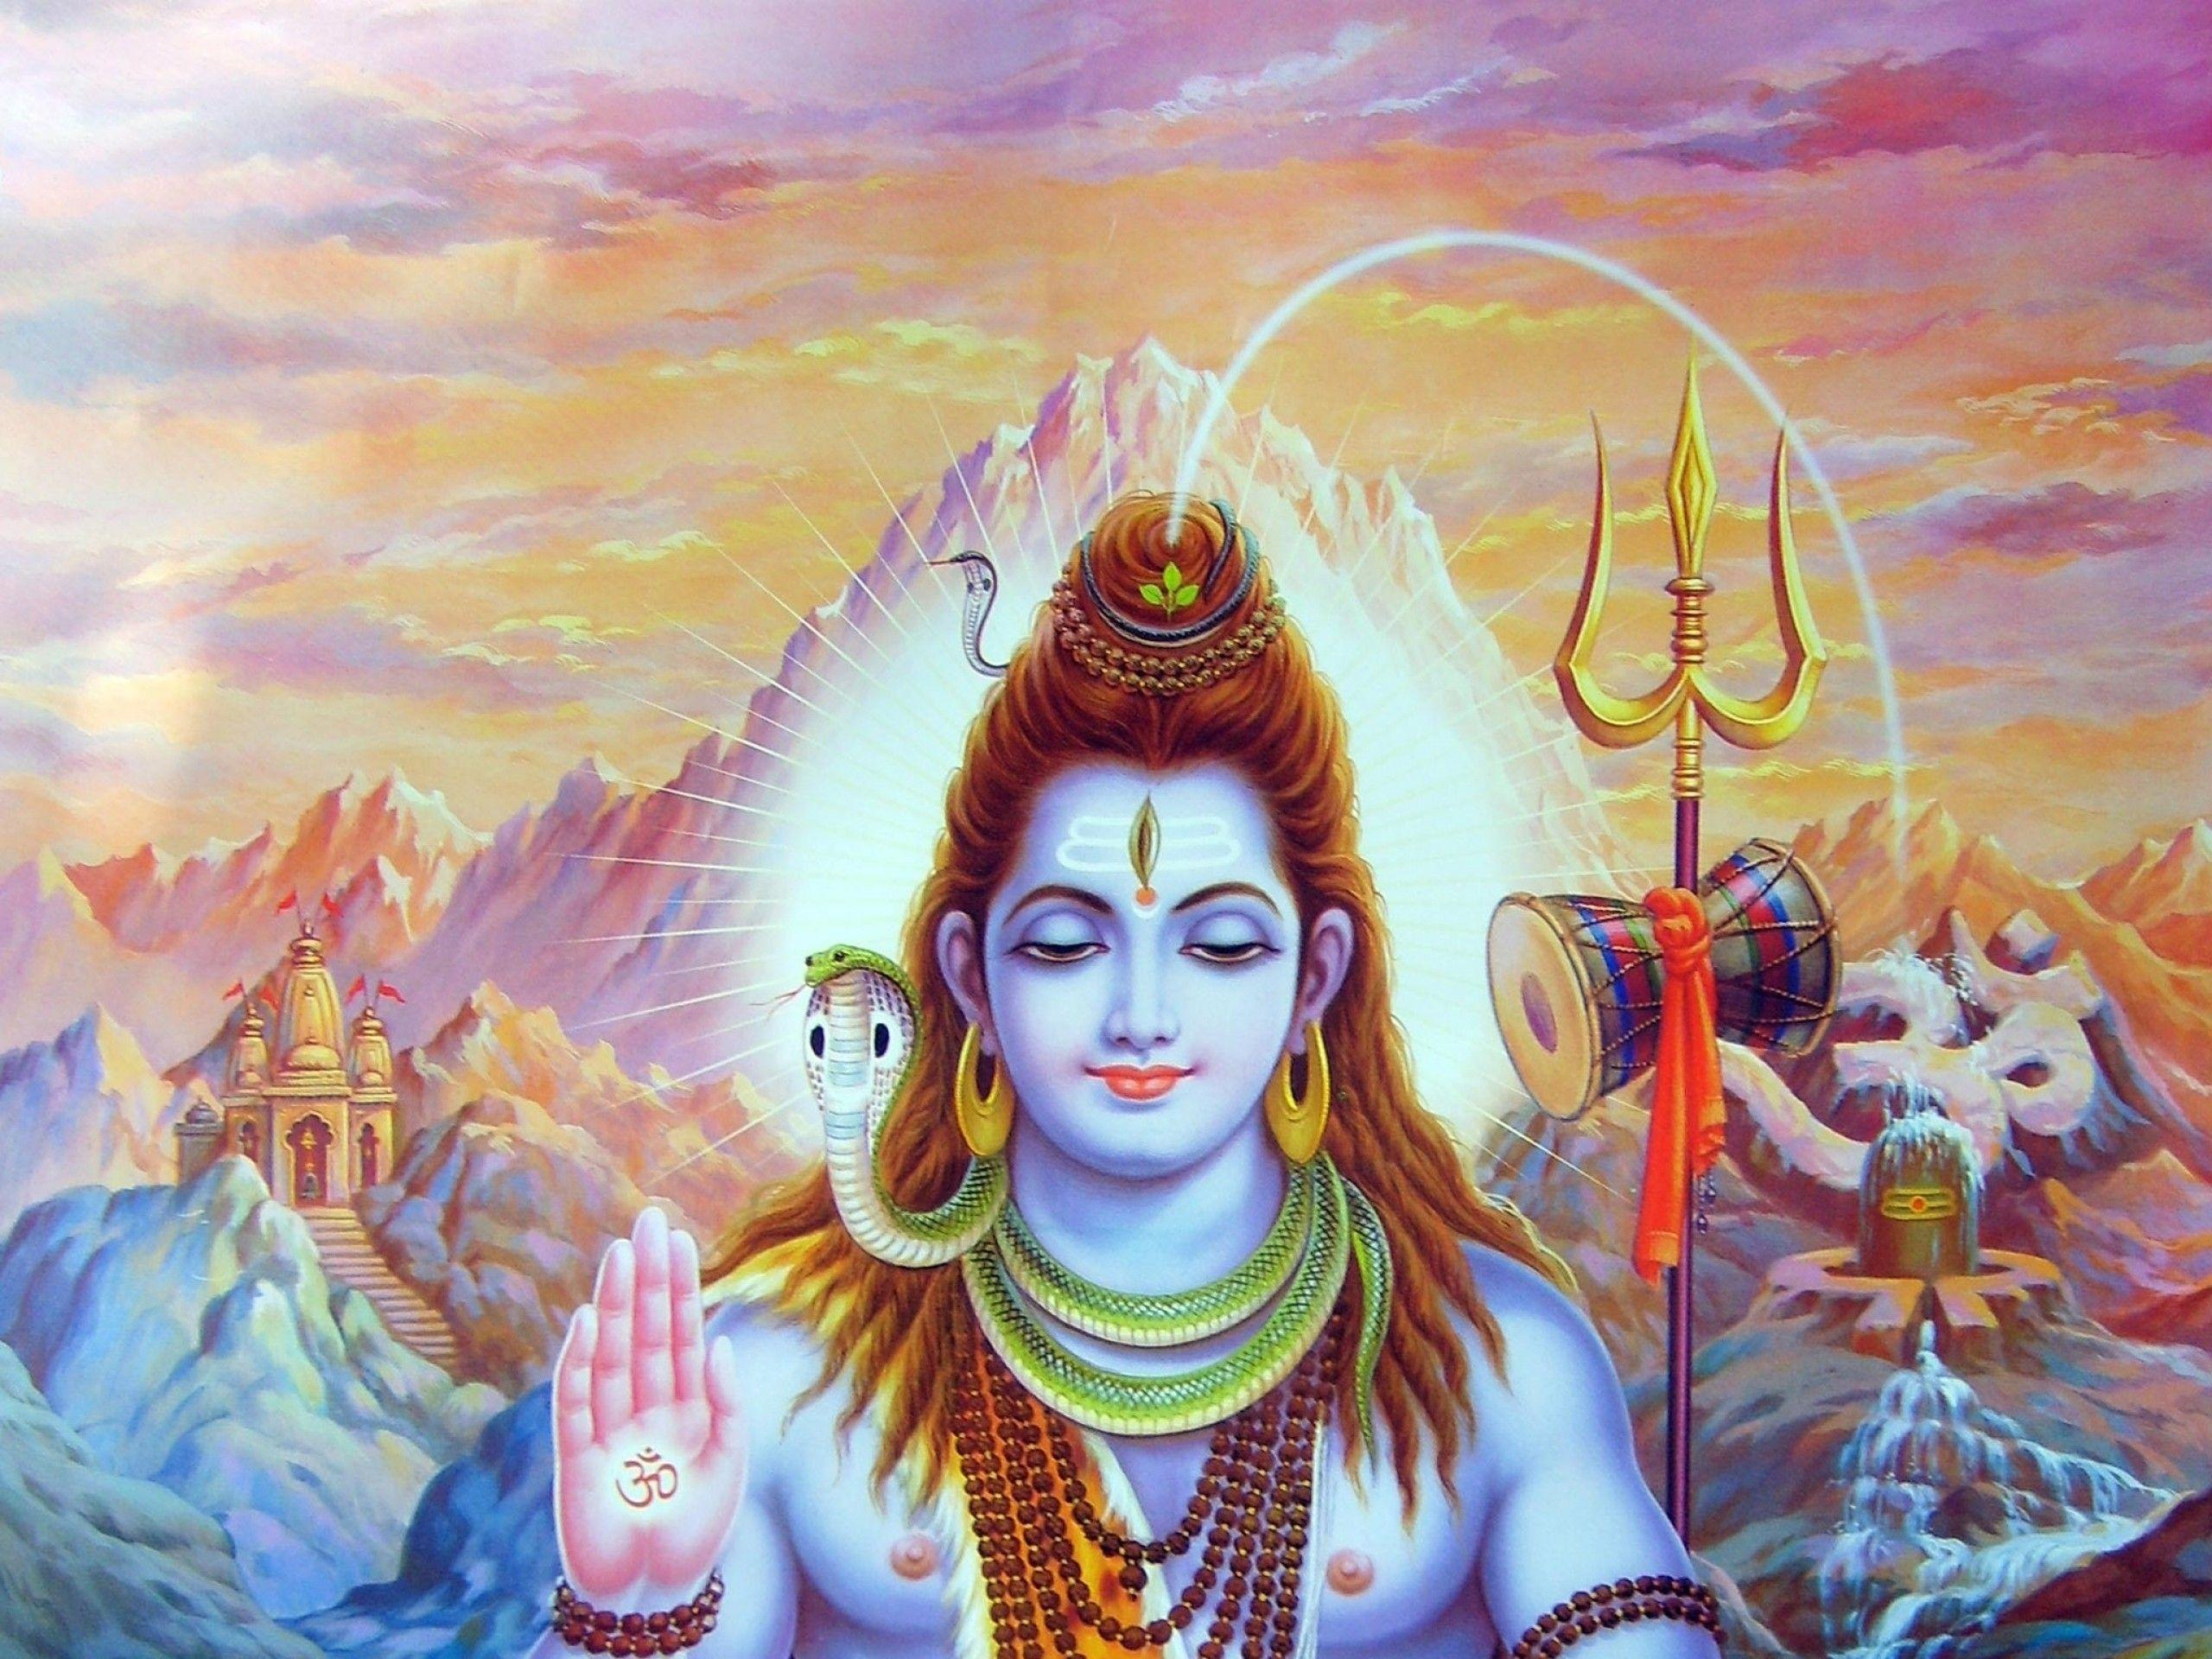 Maha Shivaratri Images, Lord Shiva Wallpapers for Shivaratri Festival